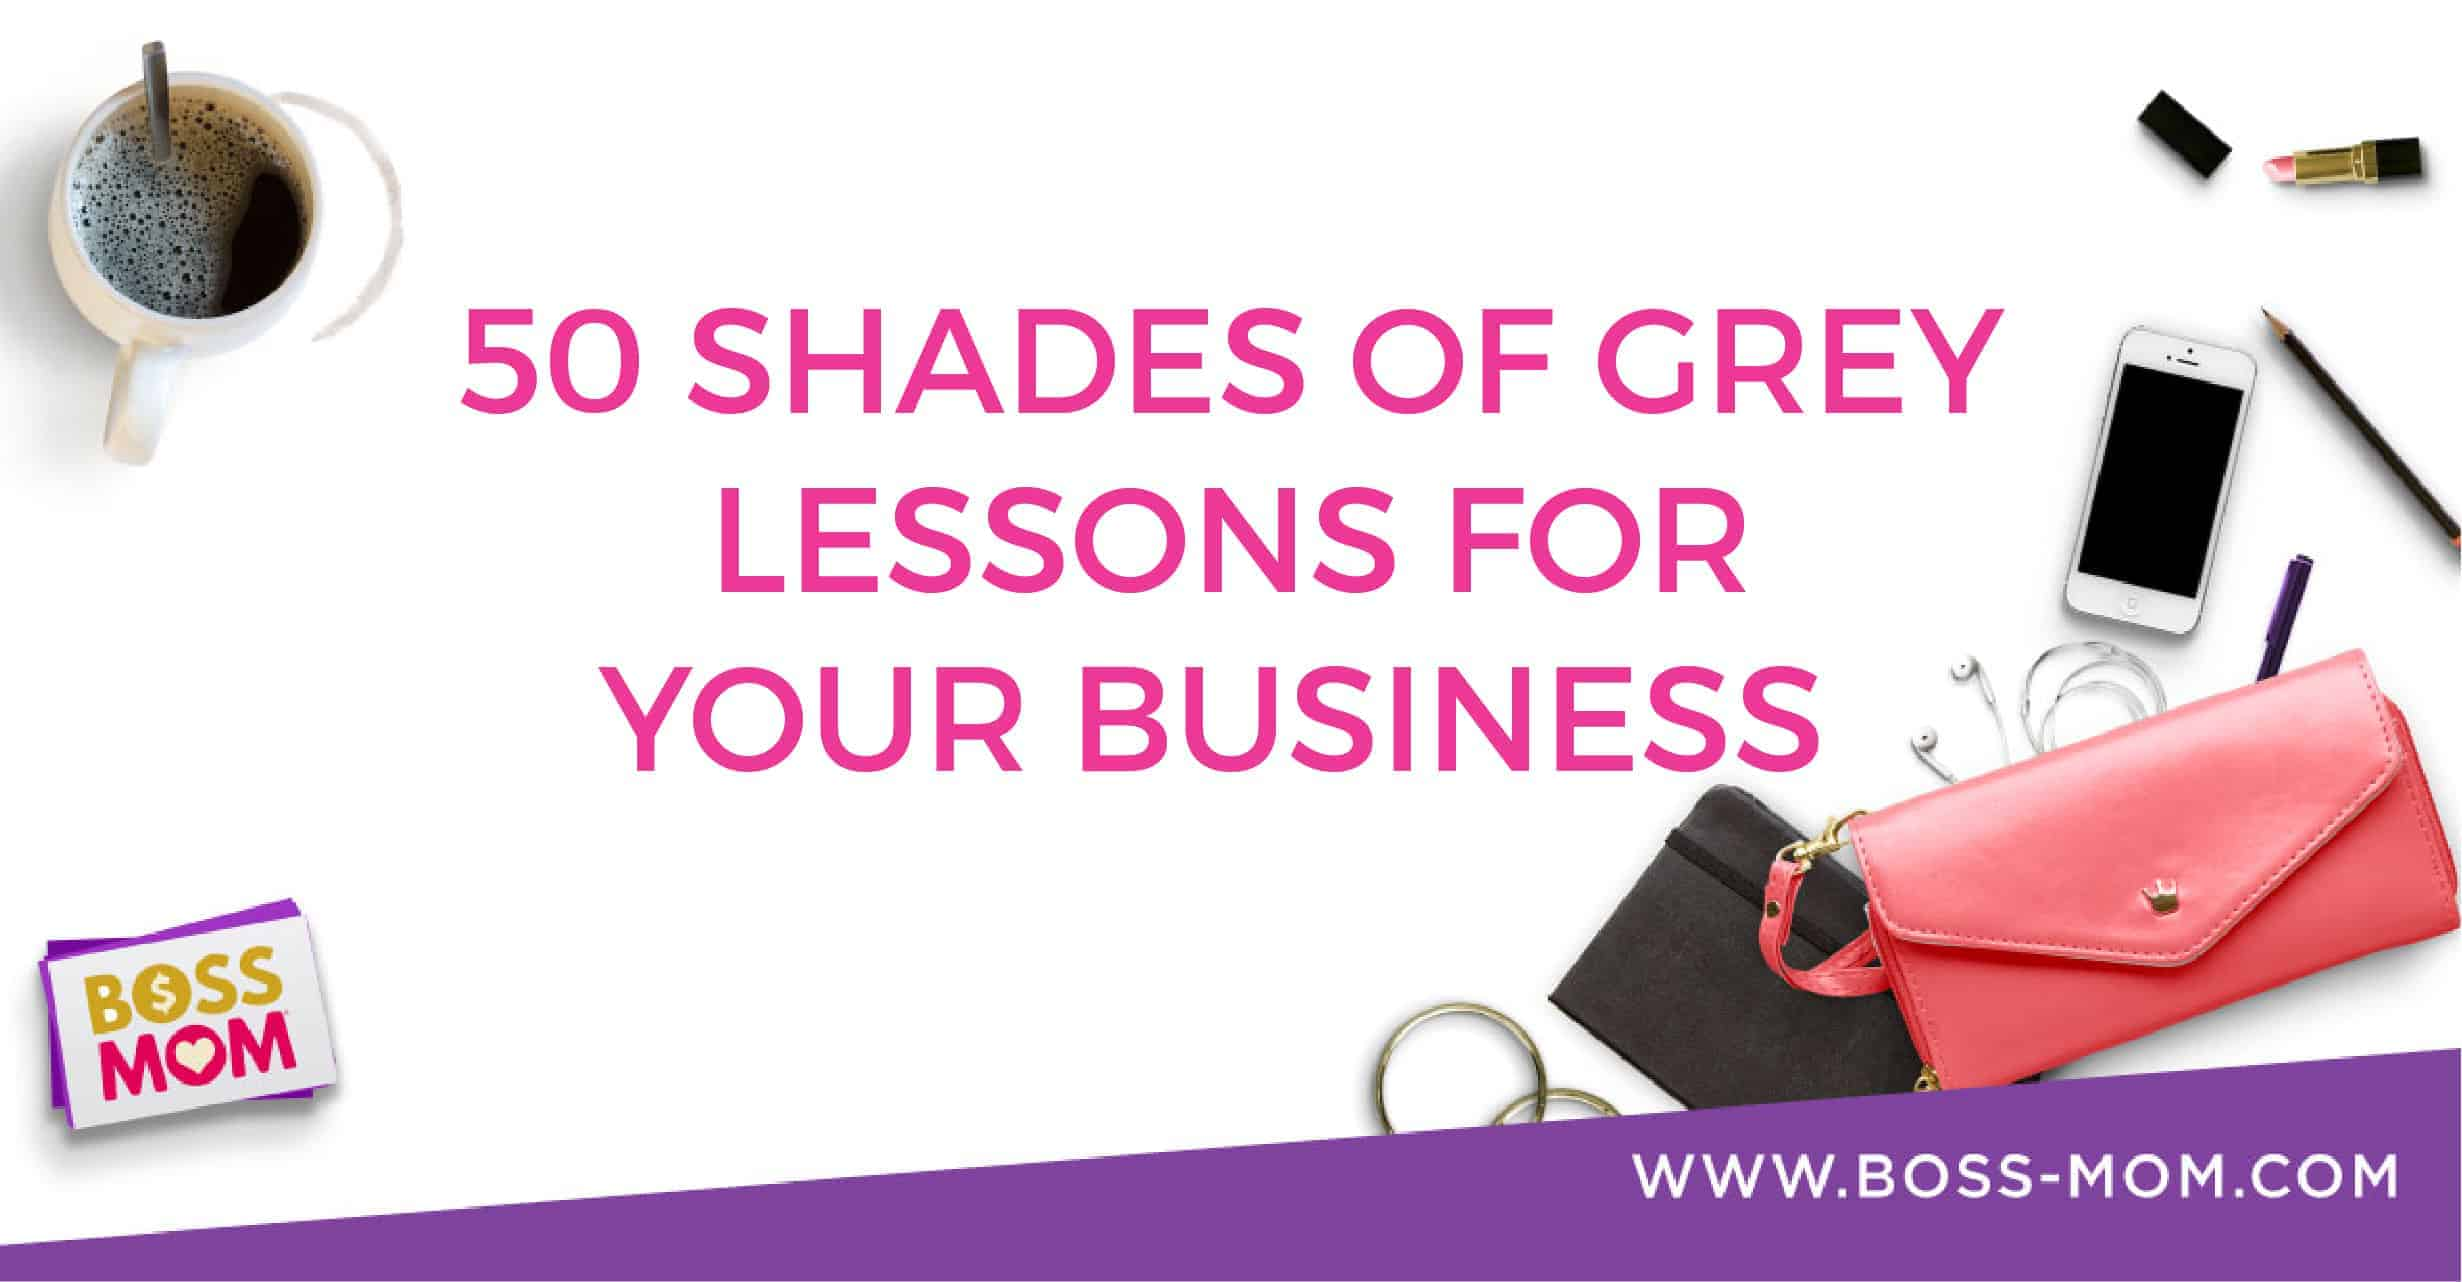 Episode 190: 50 Shades of Grey Lessons for Your Business with Dana